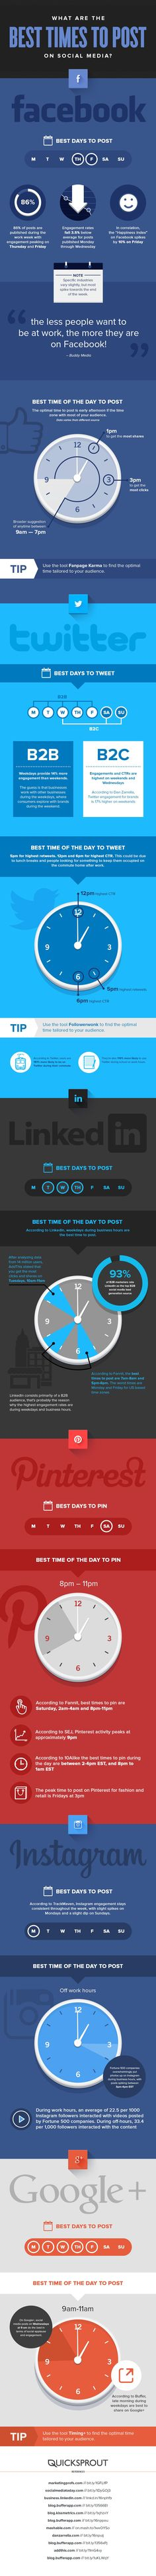 What Are The Best Times to Post on Social Media - #Infographic #marketing